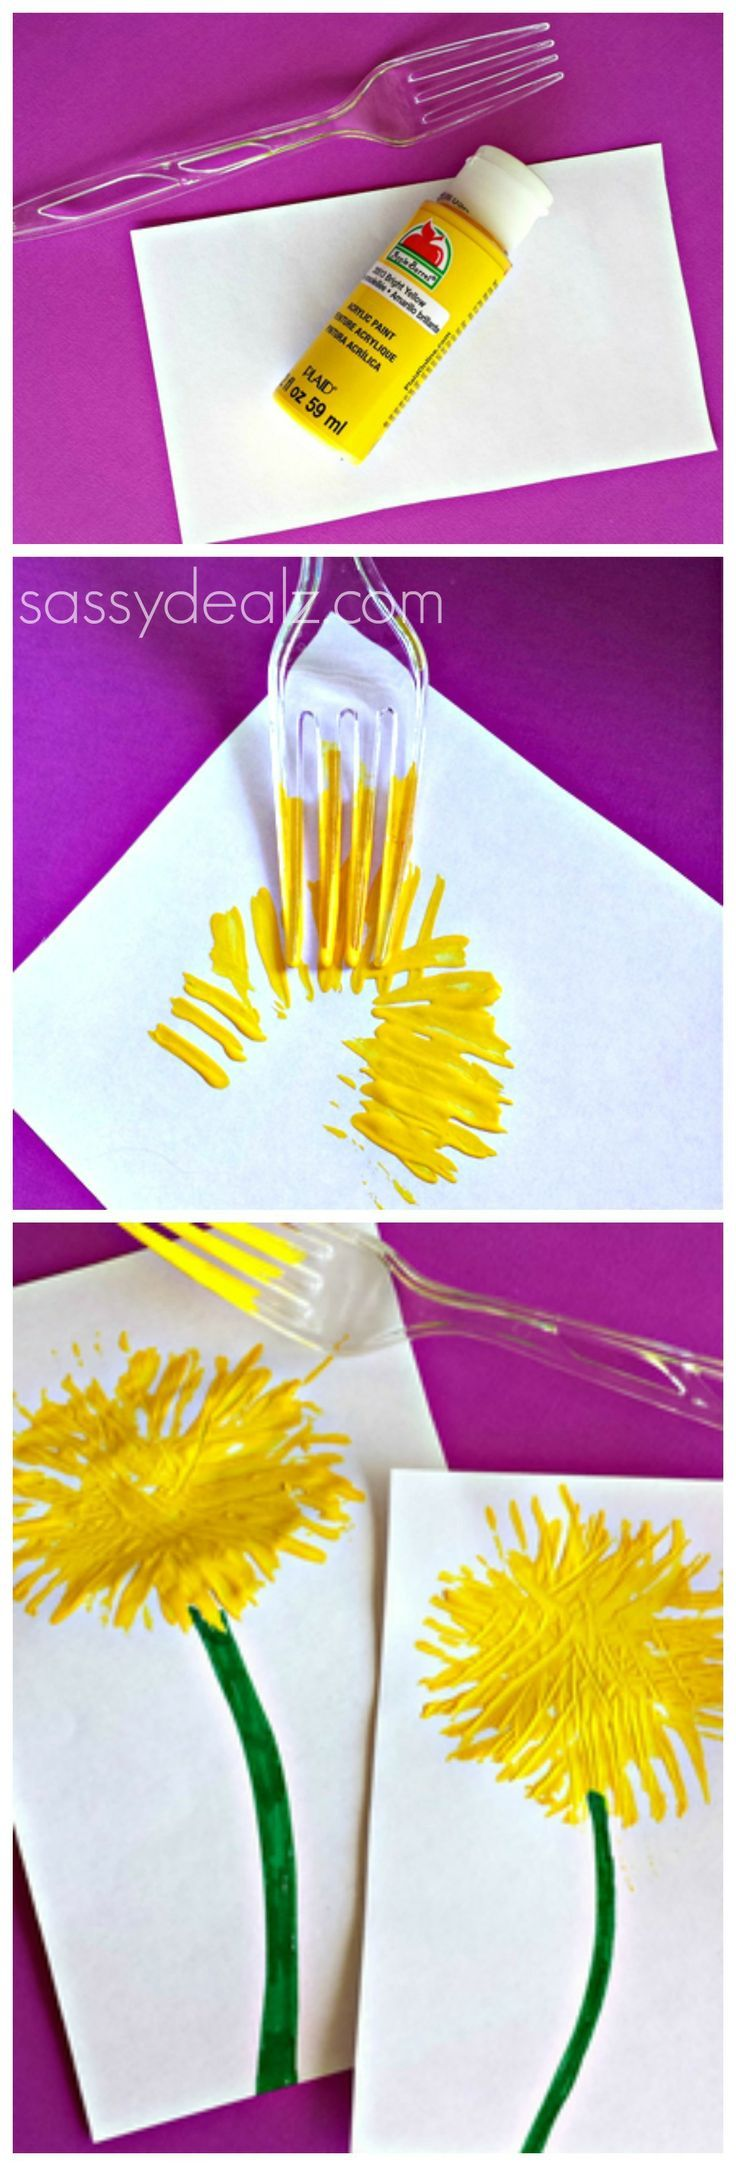 Make a Dandelion Craft using a Fork! #Spring craft for kids #Easy | CraftyMorning.com